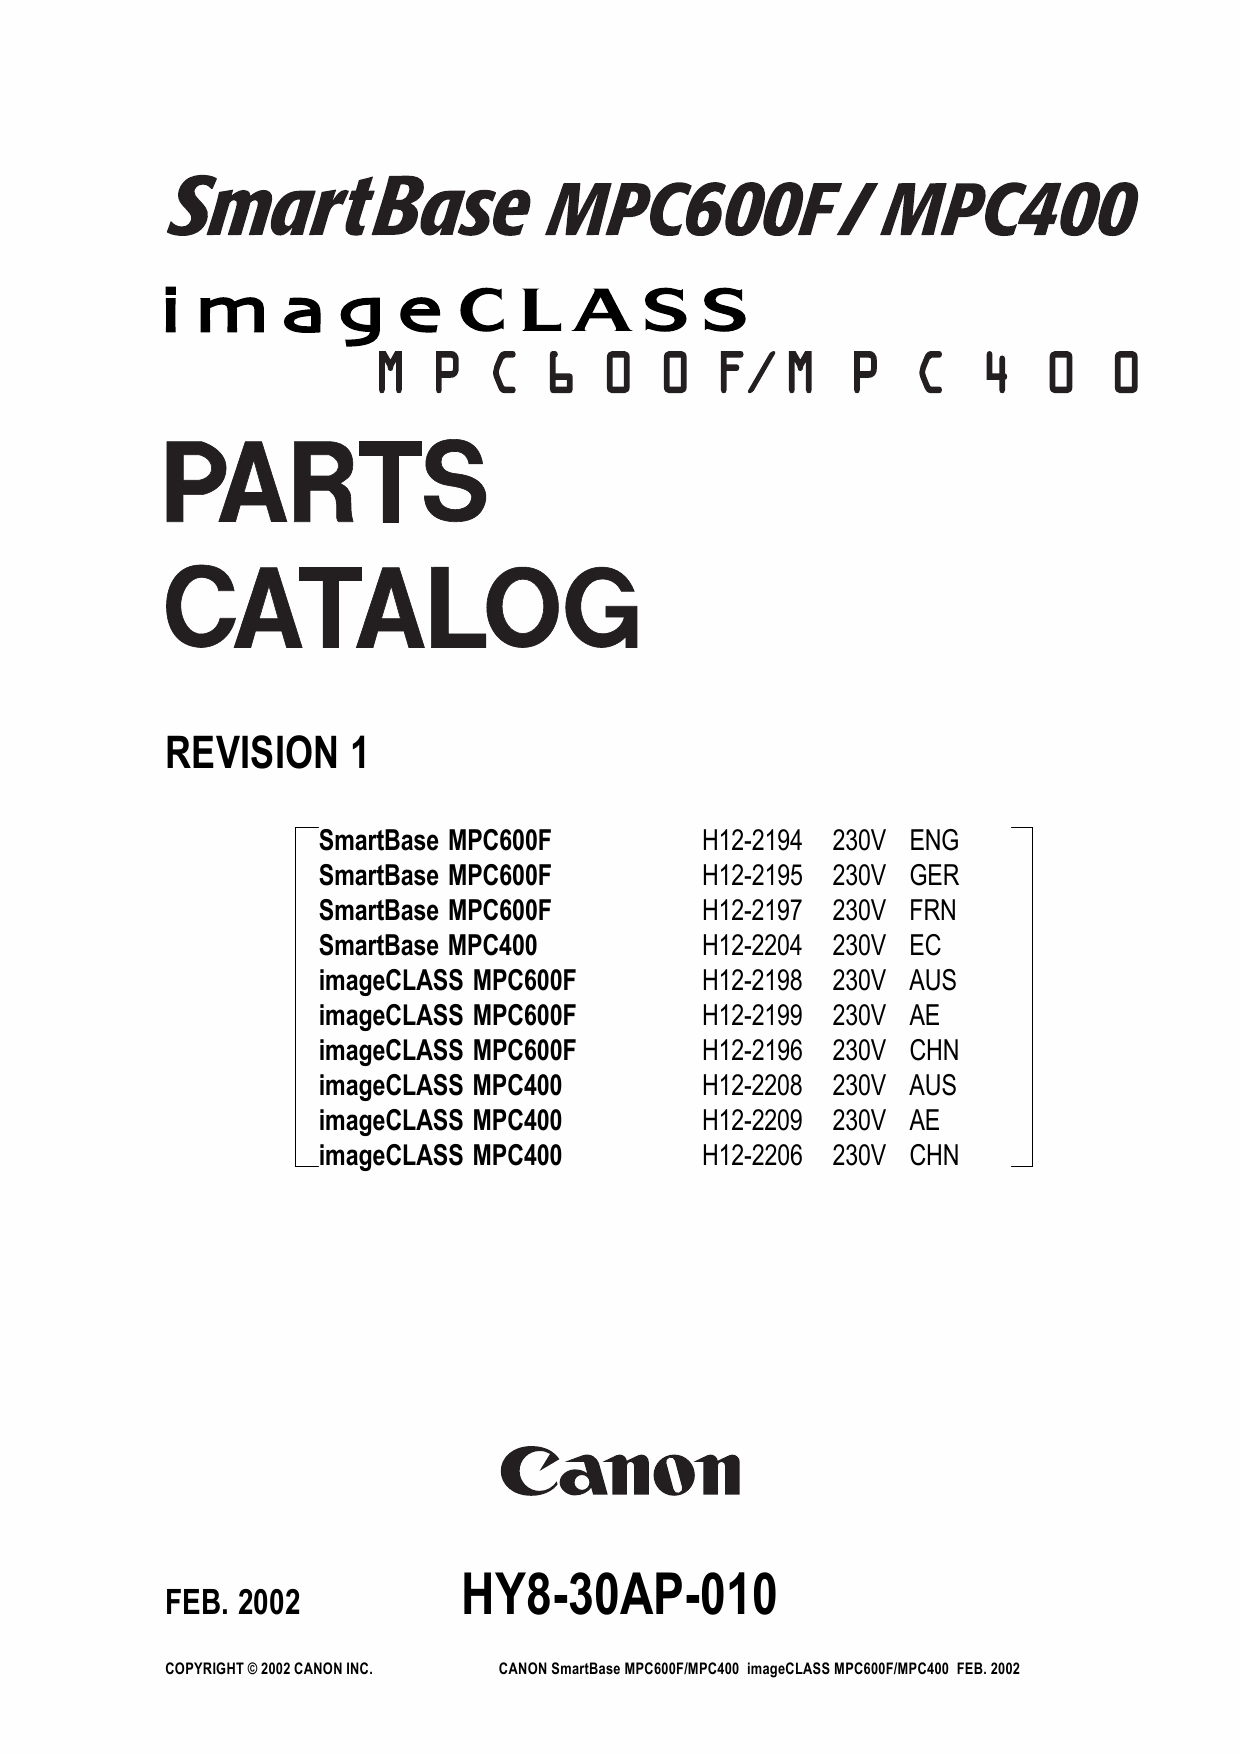 Canon SmartBase MPC400 600F Parts Catalog Manual-1